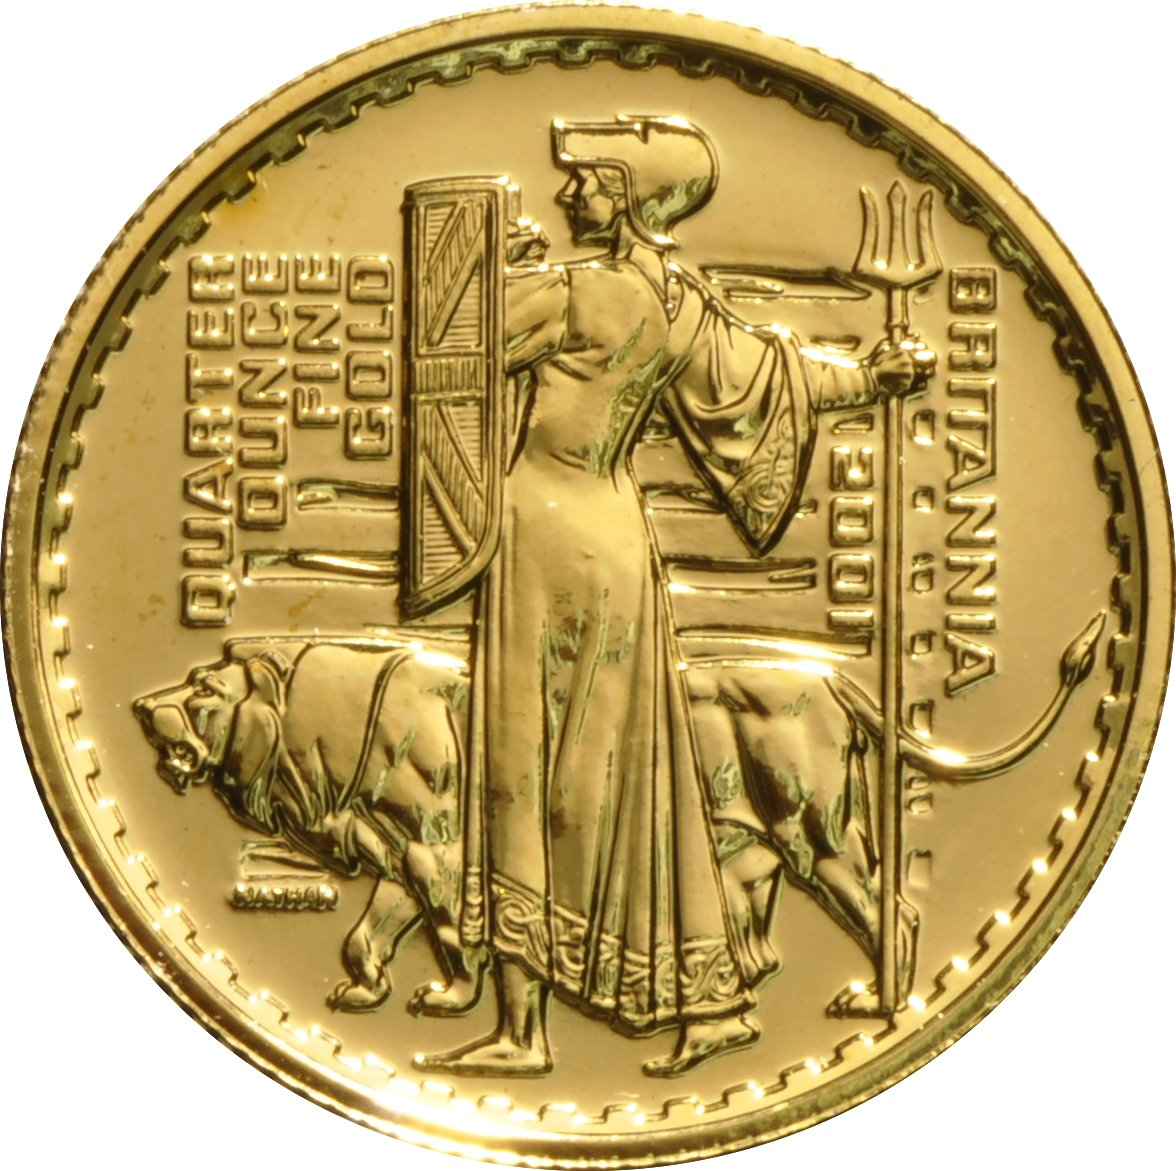 2001 Quarter Ounce Britannia Gold Coin 456